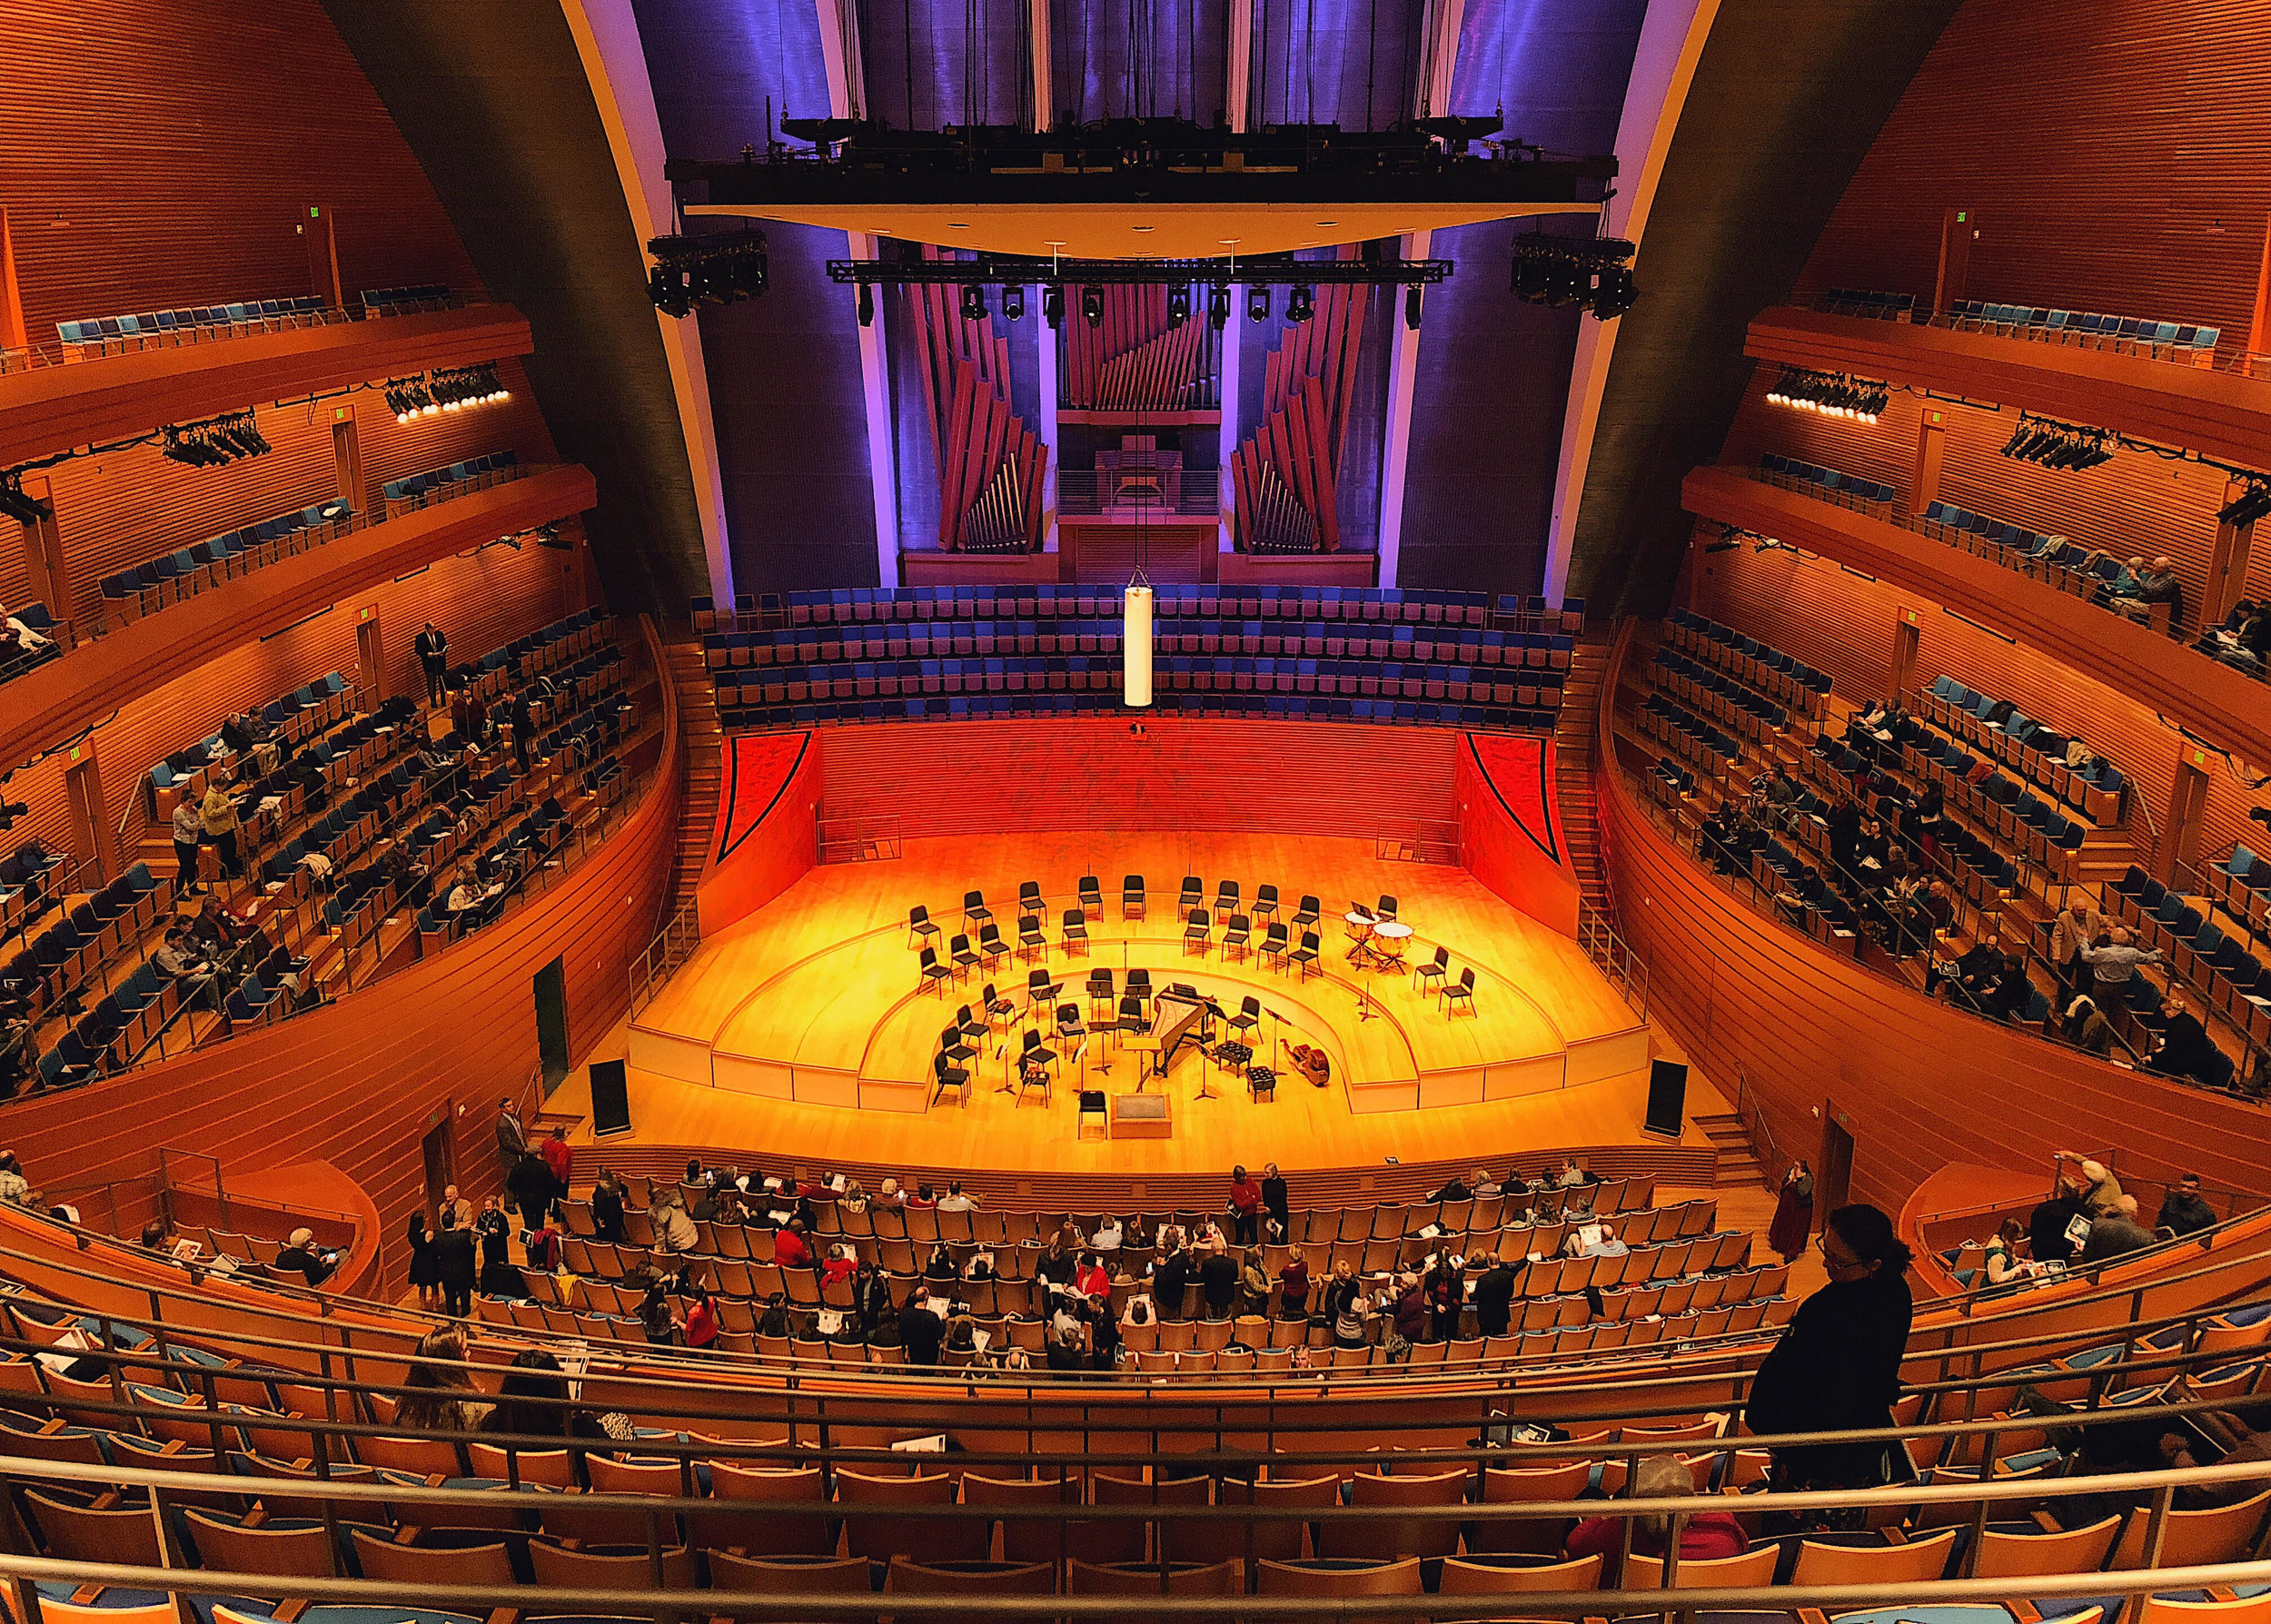 Helzberg Concert Hall, Kauffman Center for the Performing Arts. Kansas City.